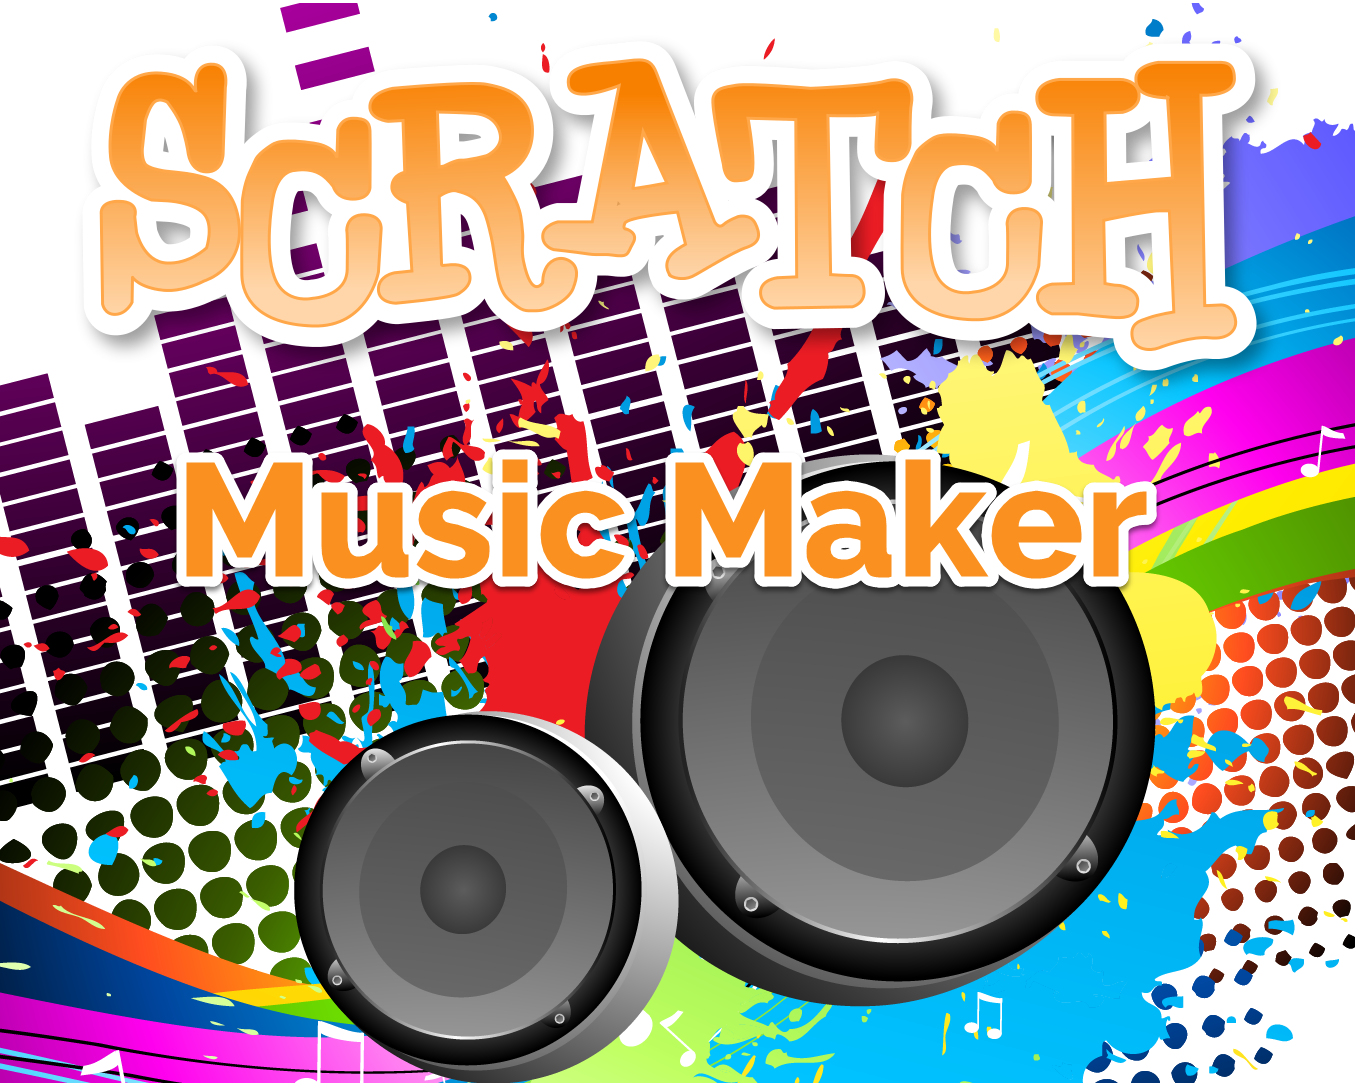 stereo speakers, colorful digital music displays in background, scratach music maker written in yellow orange